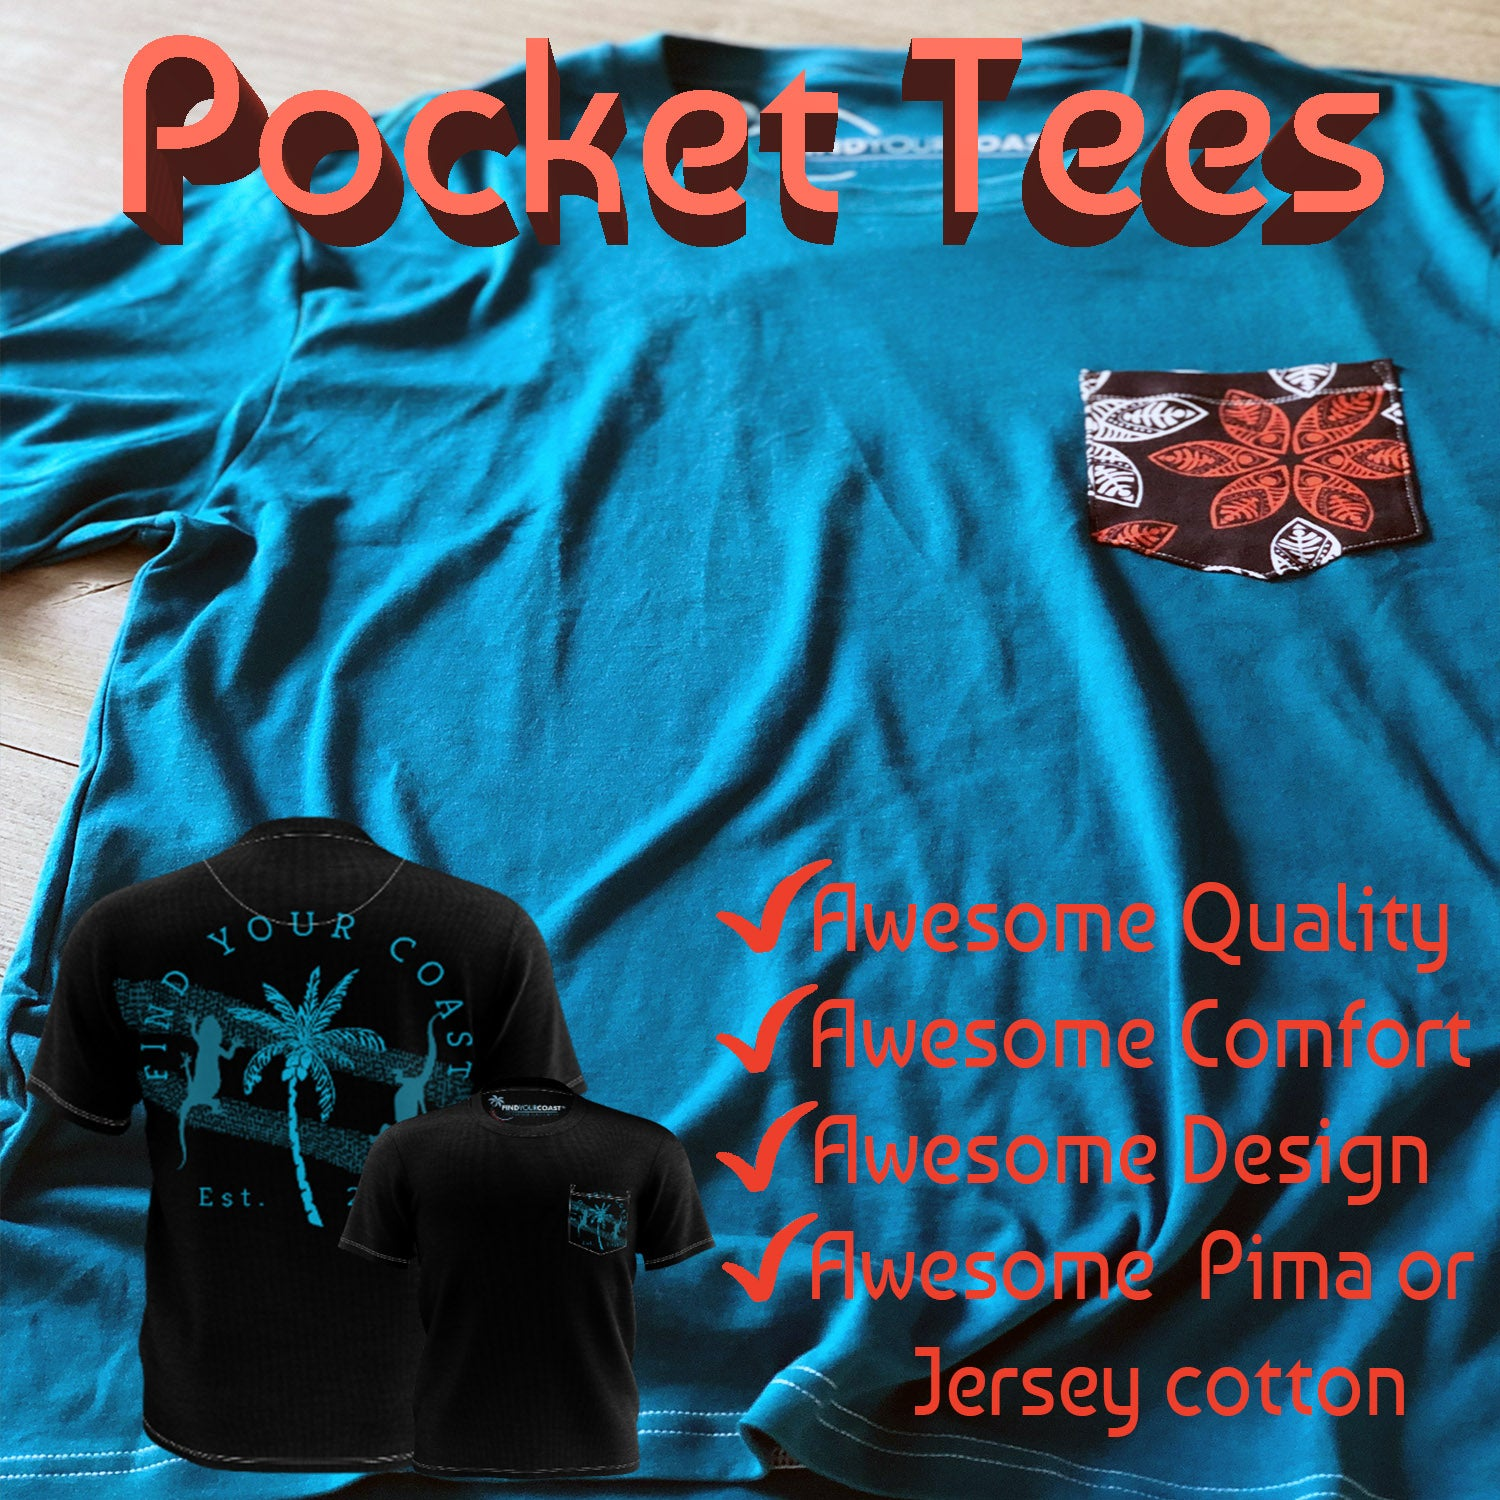 Find Your Coast Pocket Tees